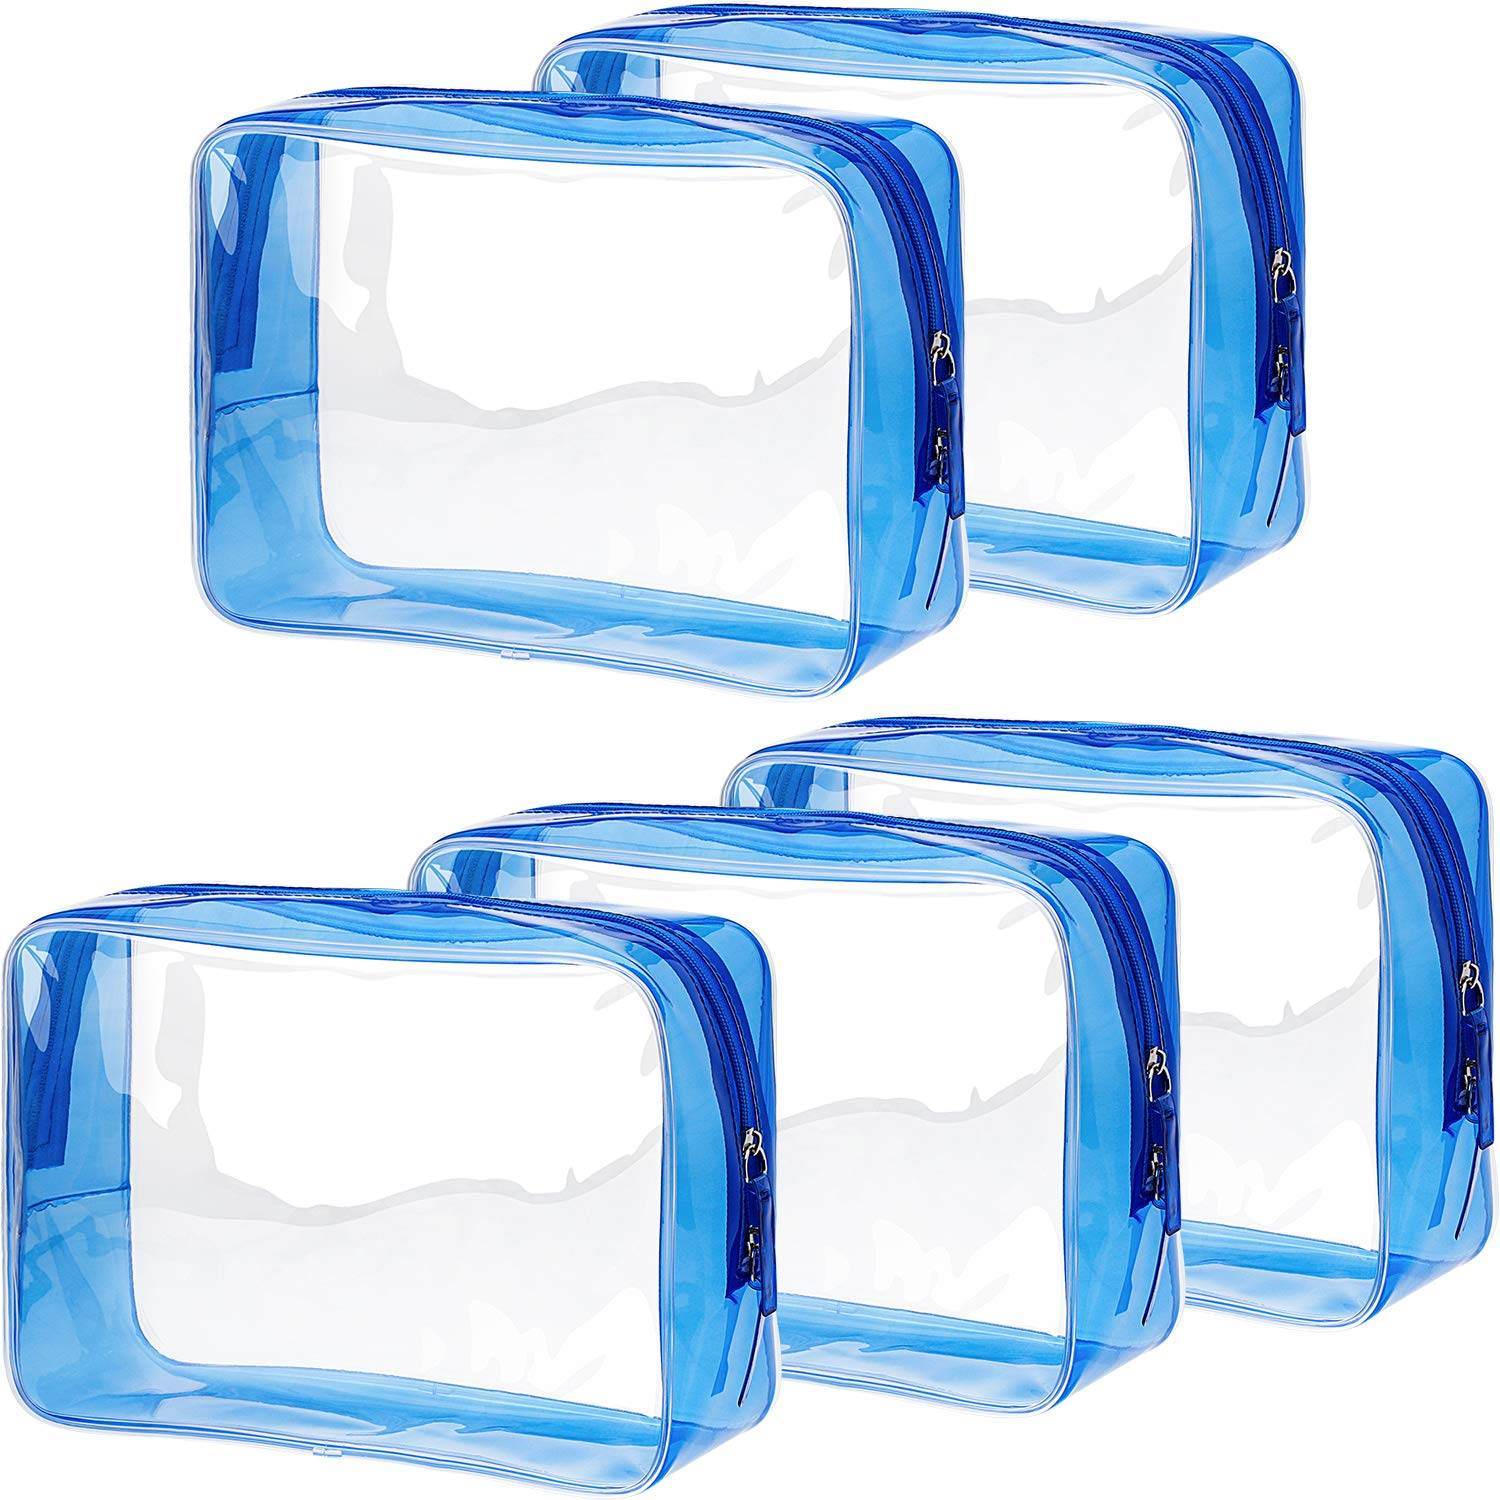 Pangda 5 Pack Clear PVC Zippered Toiletry Carry Pouch Portable Cosmetic Makeup Bag for Vacation, Bathroom and Organizing (Large, Blue)